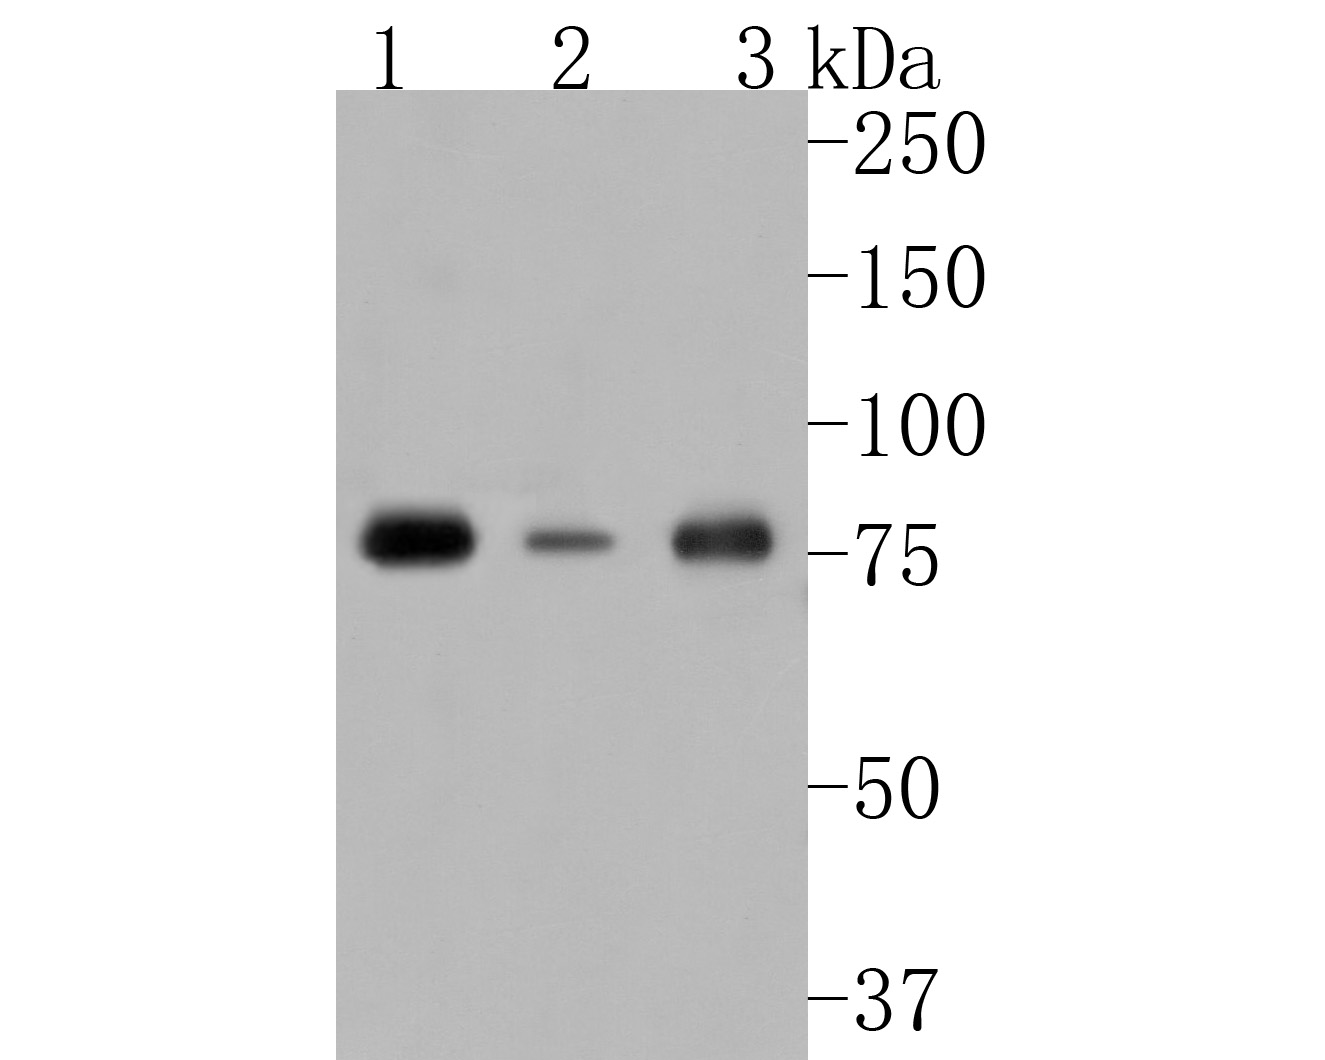 Western blot analysis of Phospho-PKC alpha (T638) on different lysates. Proteins were transferred to a PVDF membrane and blocked with 5% BSA in PBS for 1 hour at room temperature. The primary antibody (ET1702-17, 1/500) was used in 5% BSA at room temperature for 2 hours. Goat Anti-Rabbit IgG - HRP Secondary Antibody (HA1001) at 1:5,000 dilution was used for 1 hour at room temperature.<br /> Positive control: <br /> Lane 1: 293 cell lysate<br /> Lane 2: Hela cell lysate<br /> Lane 3: Jurkat cell lysate